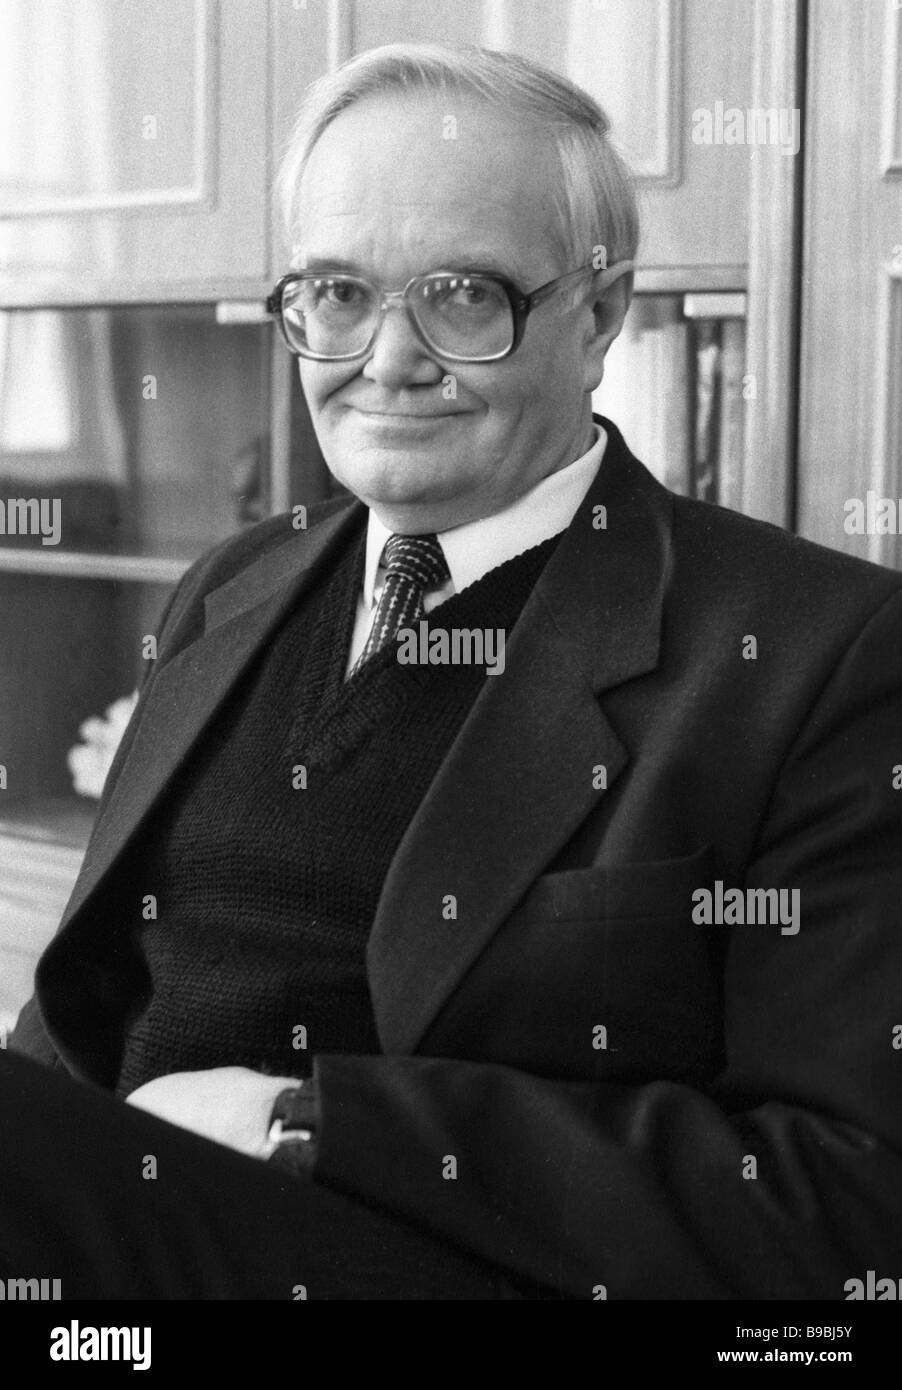 Head of Institute of Philosophy of the USSR Academy of Sciences Vyacheslav Stepin - Stock Image